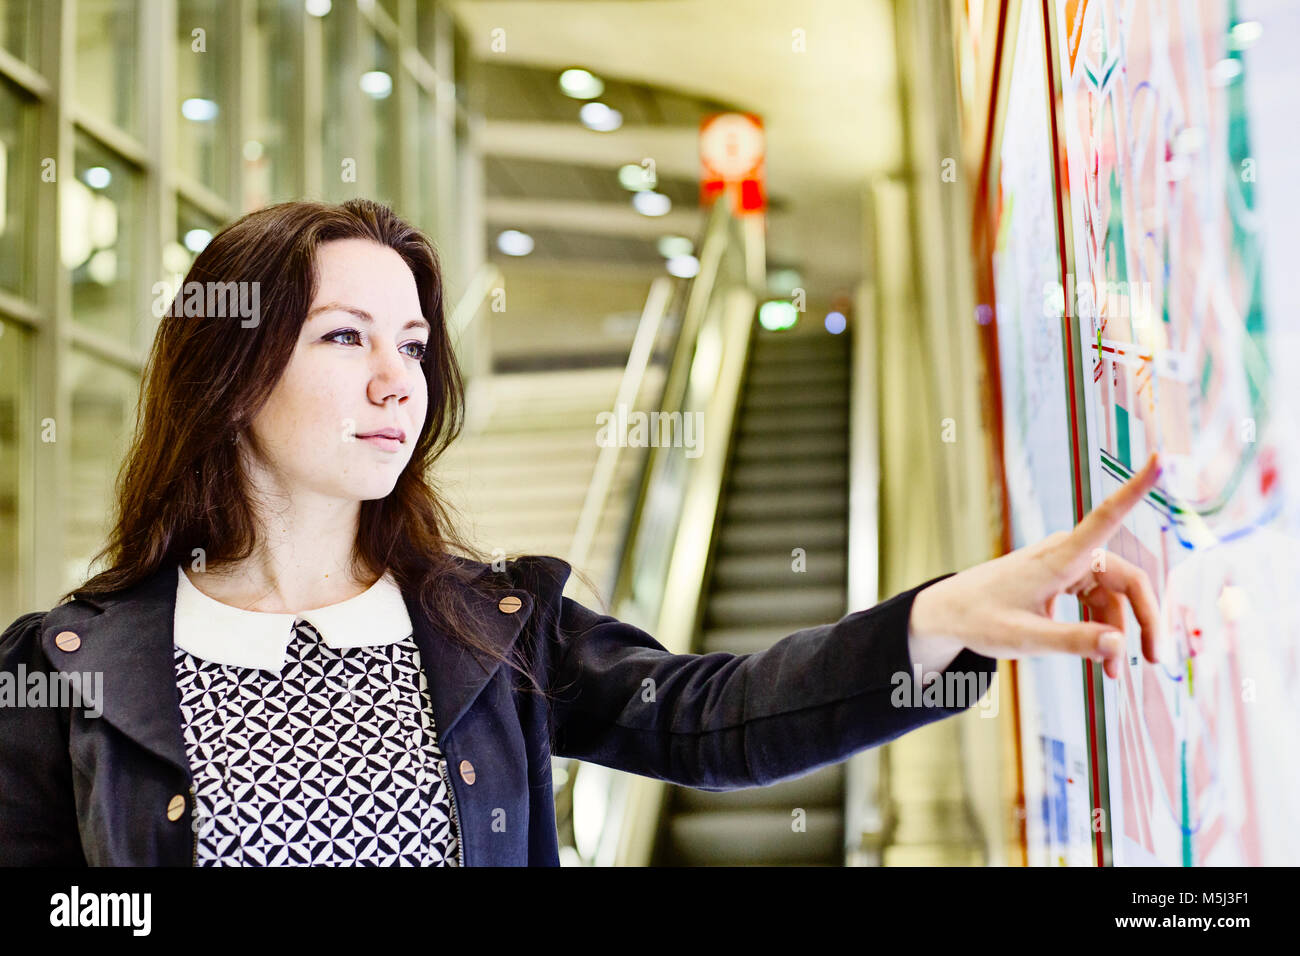 Portrait of young woman looking at city map in underground station - Stock Image